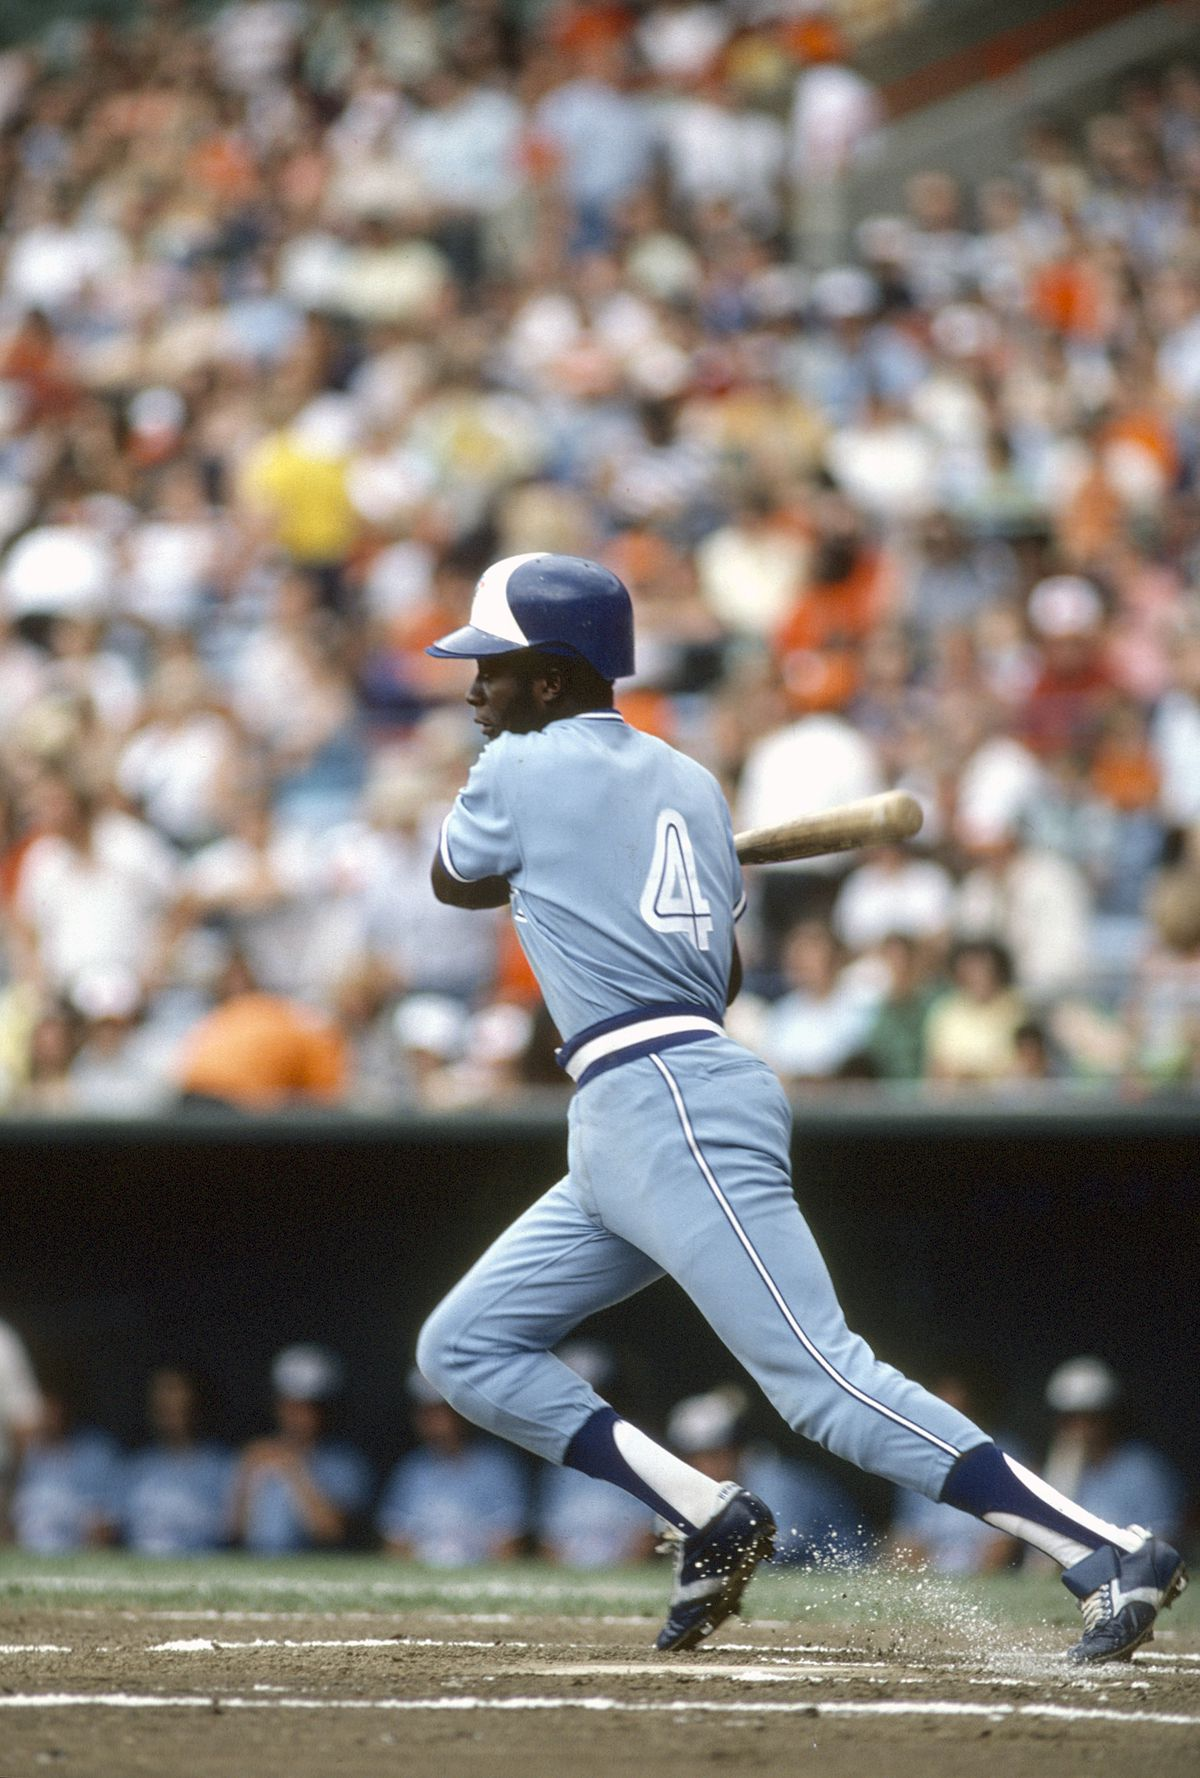 Alfredo Griffin (#4) takes a swing in 1979, again in Baltimore's Memorial Stadium.